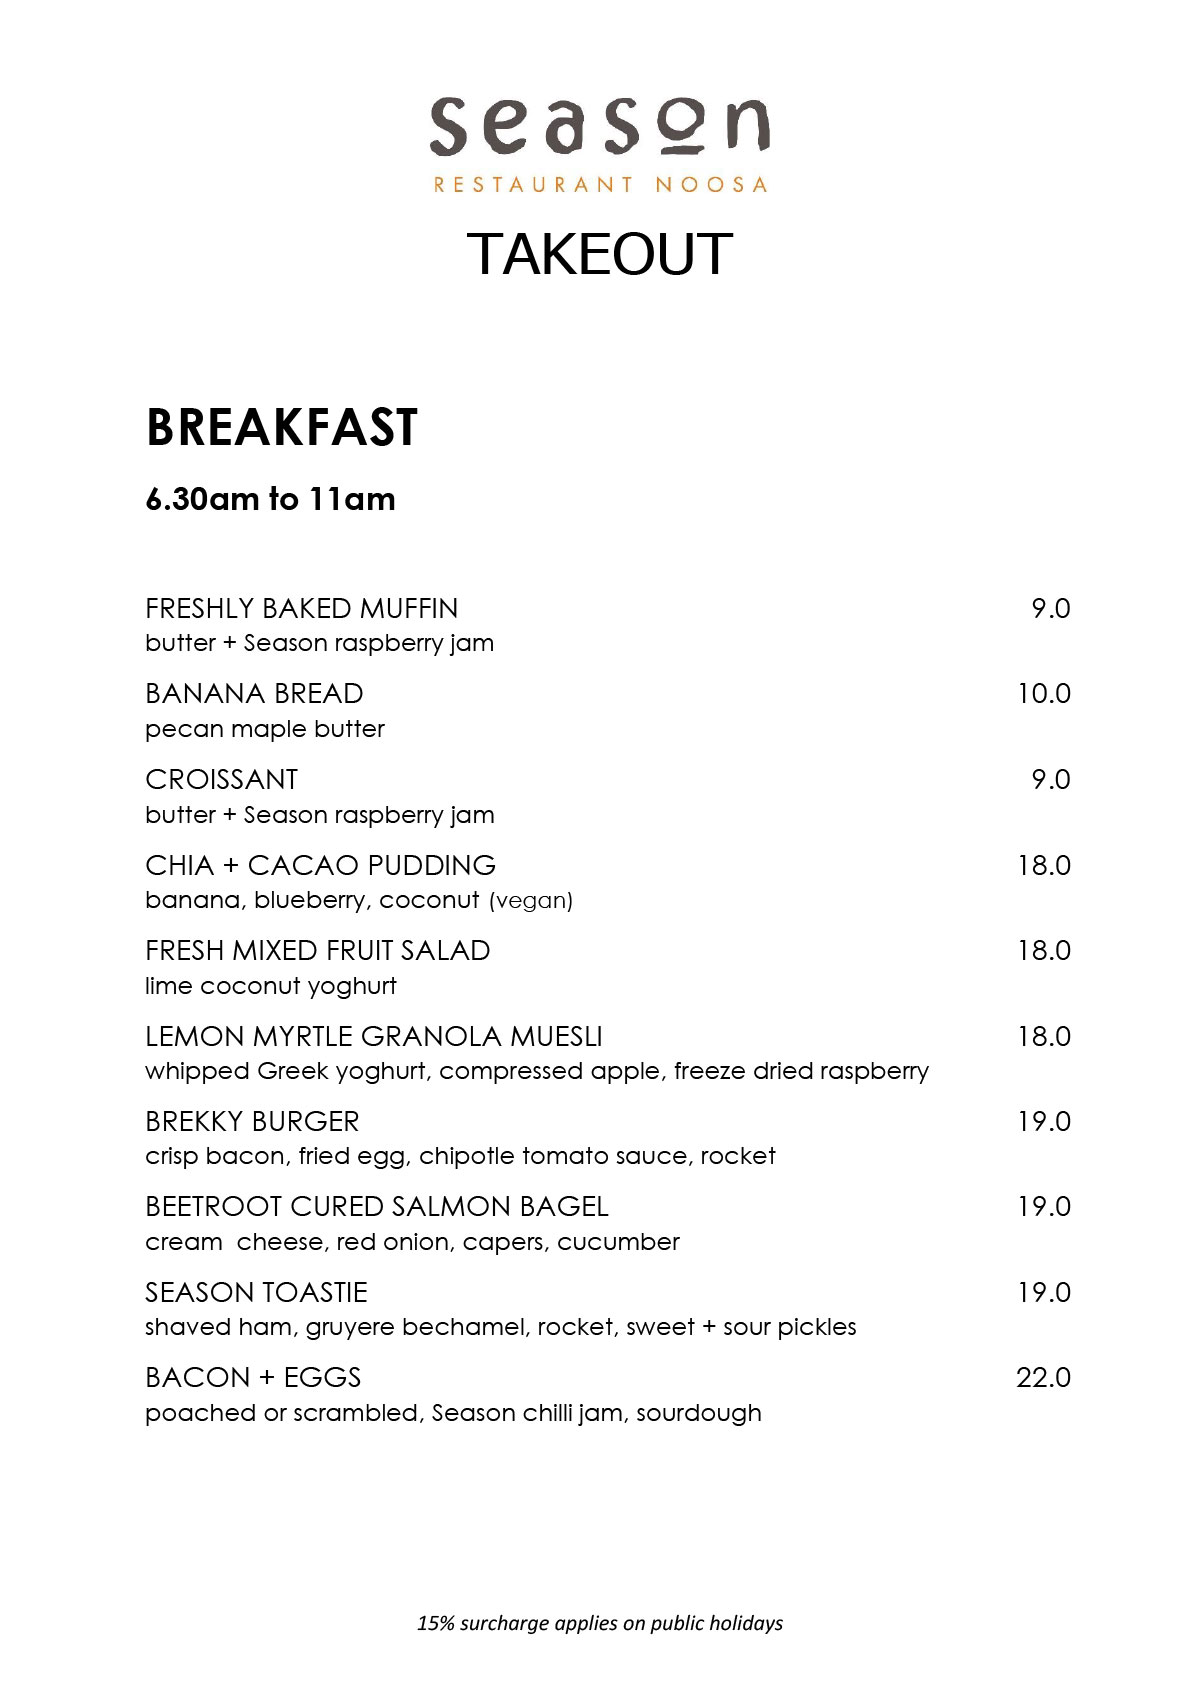 Takeout Breakfast Lunch And Dinner 1